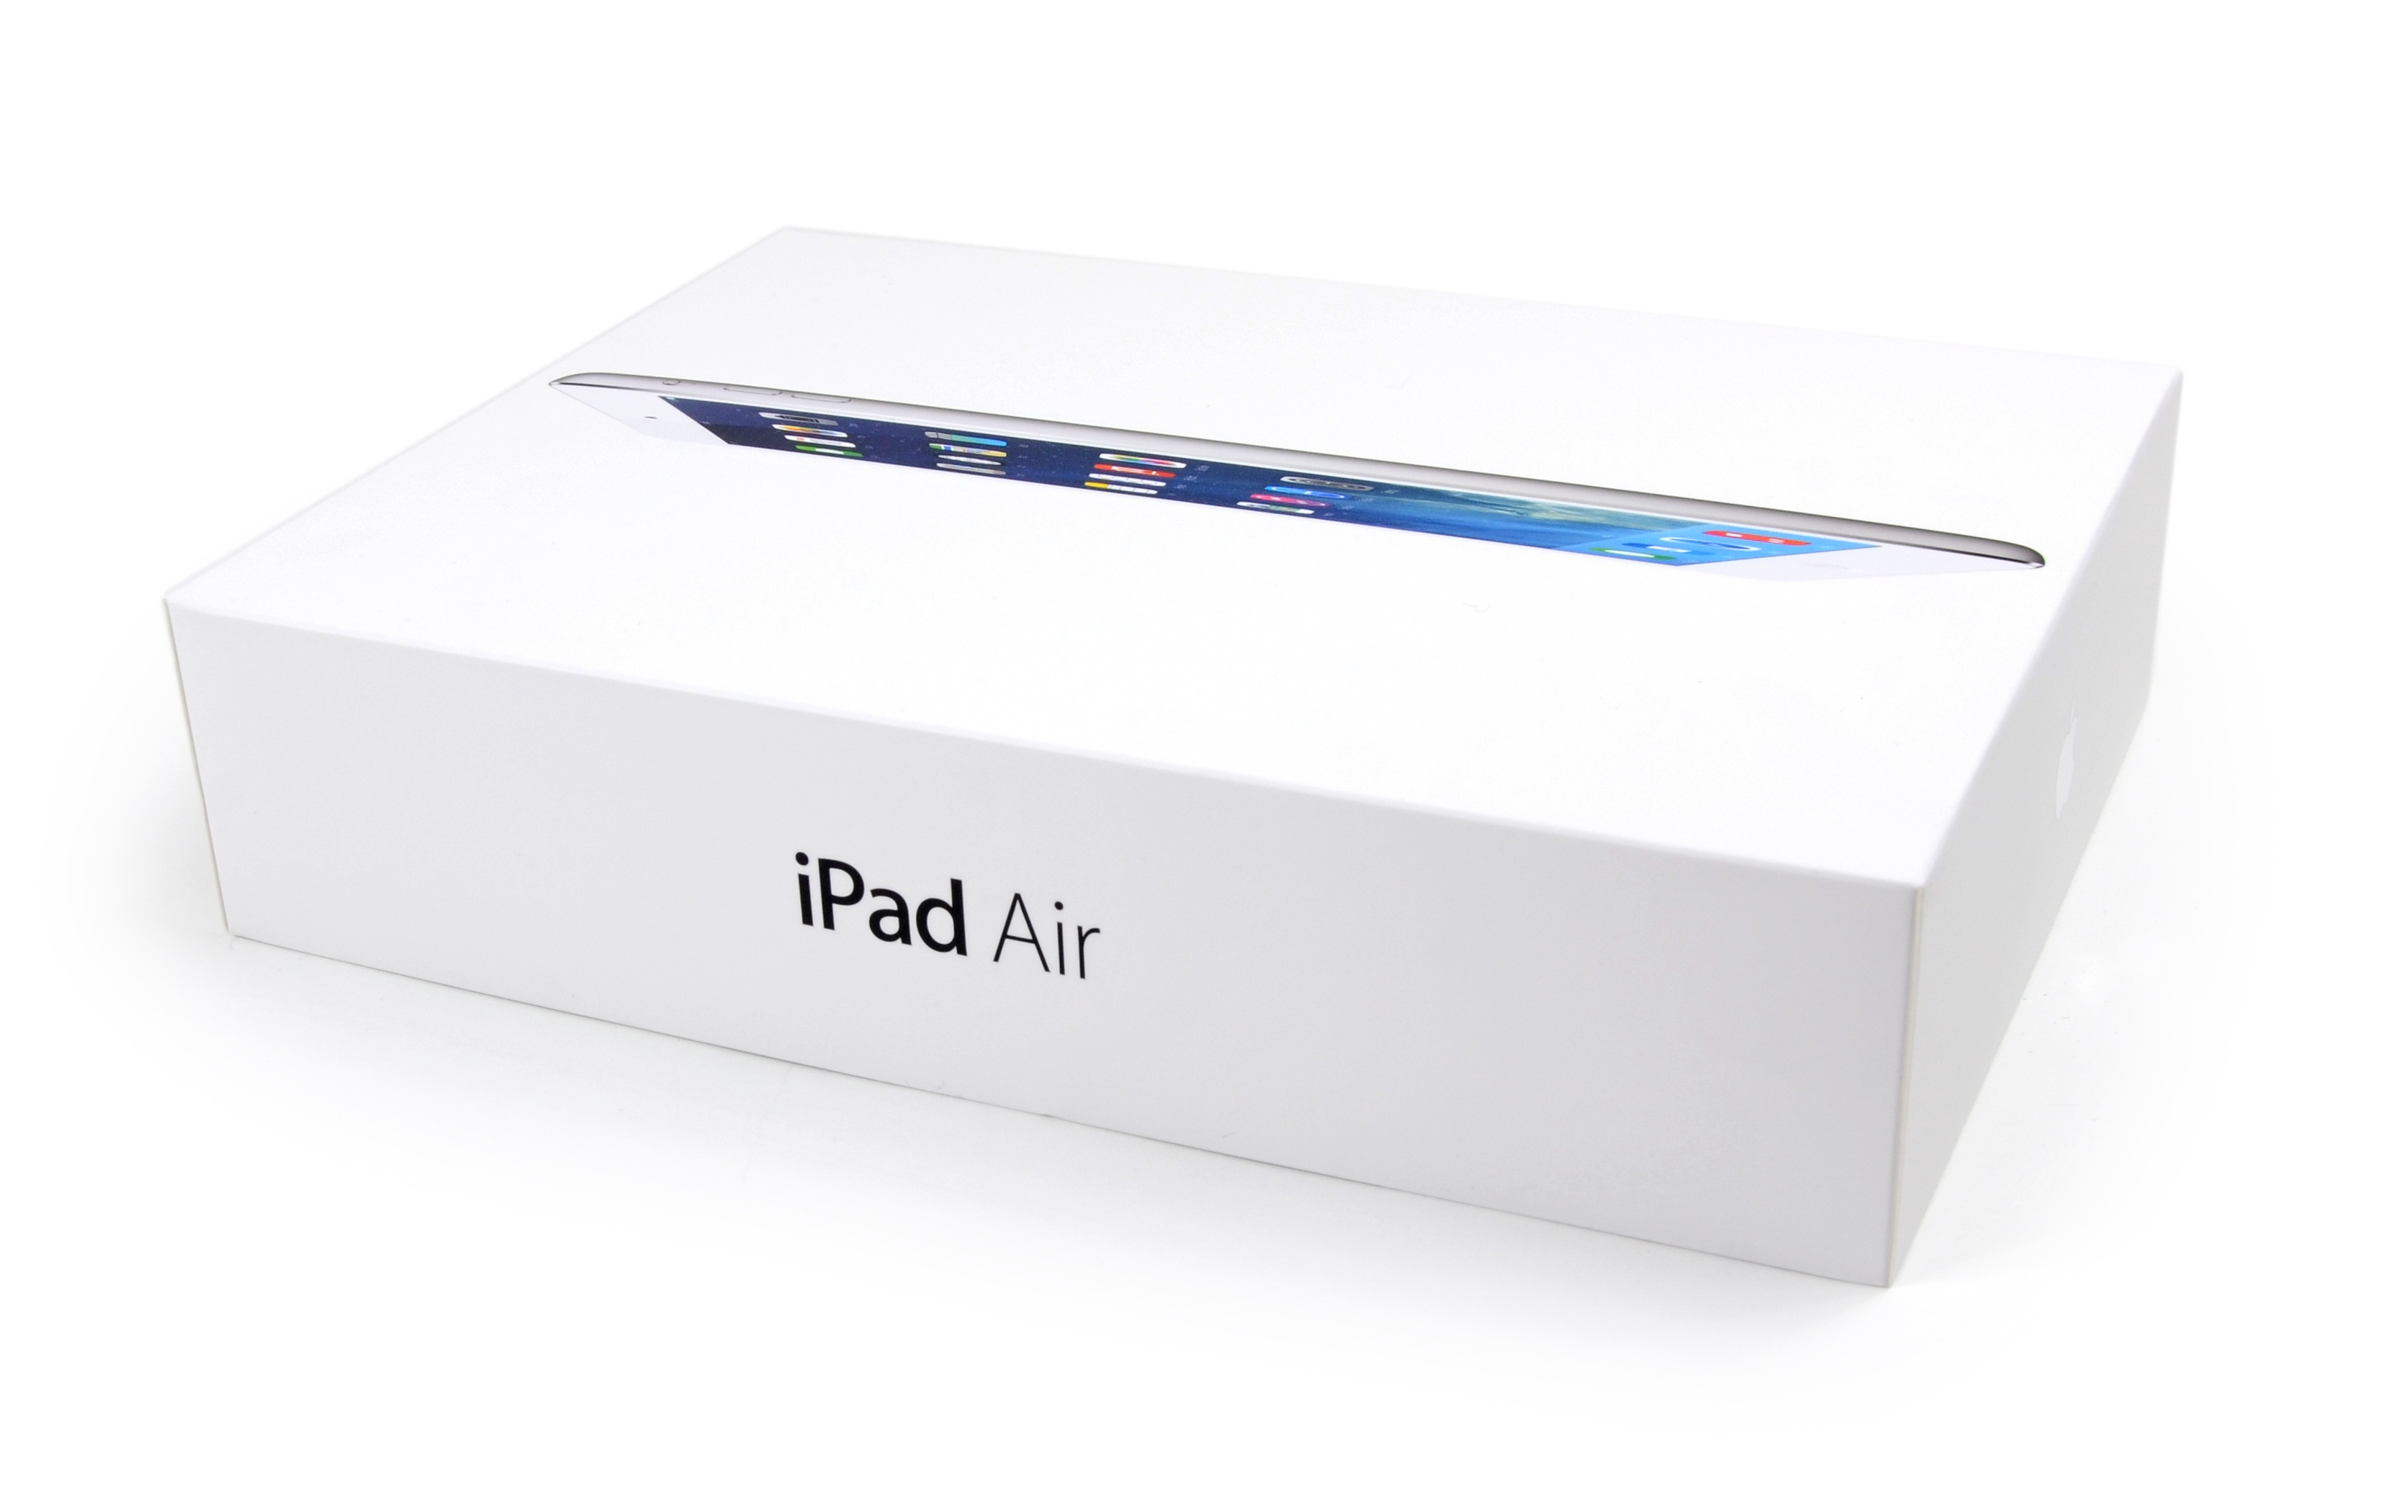 ipad_packaging_ifixit.medium